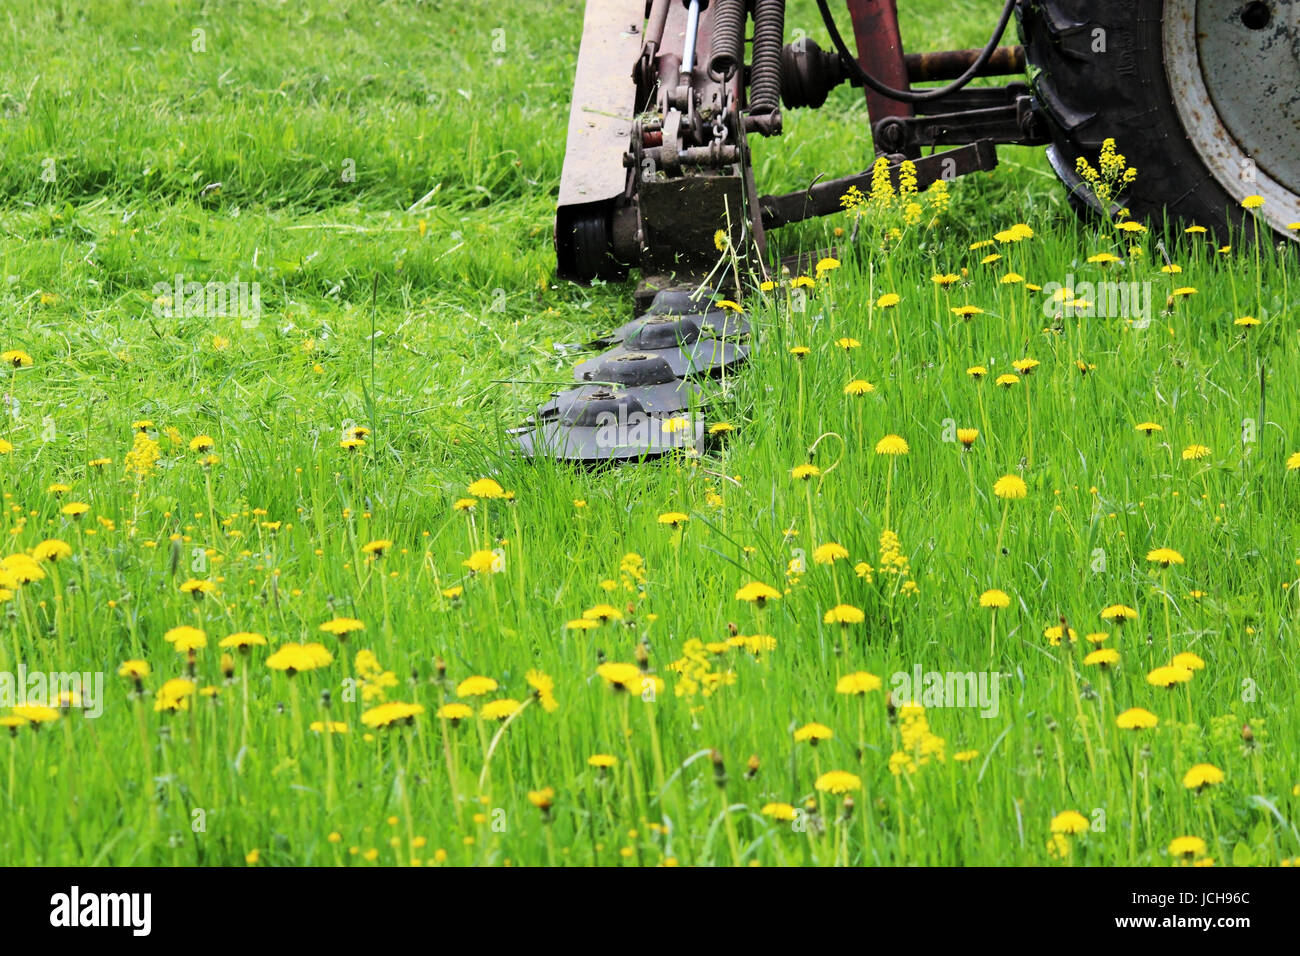 A tractor with a special attachment automatically mows grass and dandelions on an urban lawn - Stock Image